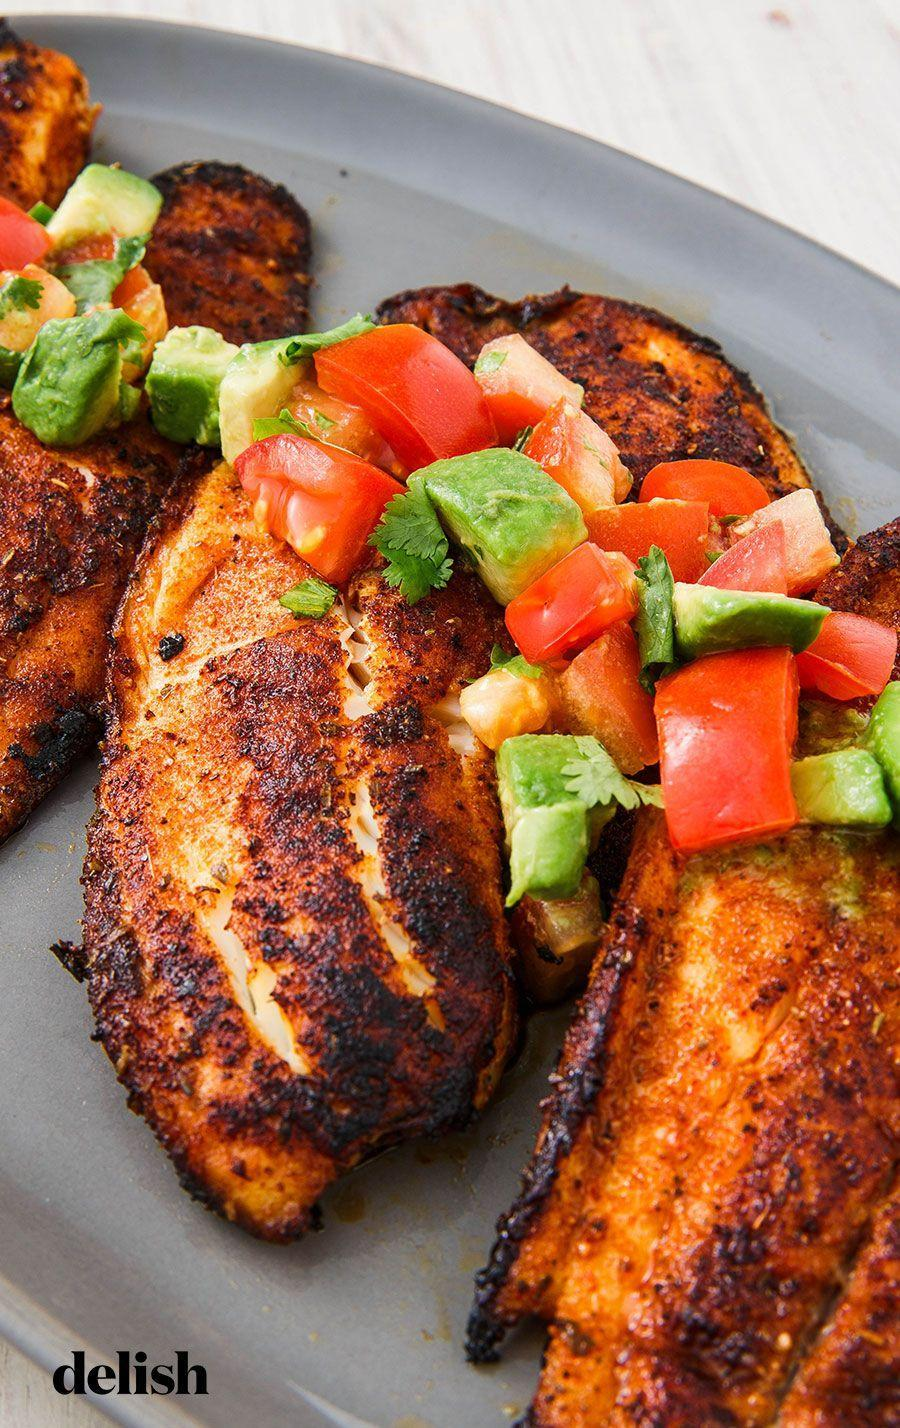 """<p>Tilapia is one of our fave budget-friendly fishes, and this flavor-packed spice rub makes it 10x better.</p><p>Get the recipe from <a href=""""https://www.delish.com/cooking/recipe-ideas/a25239430/blackened-tilapia-recipe/"""" rel=""""nofollow noopener"""" target=""""_blank"""" data-ylk=""""slk:Delish"""" class=""""link rapid-noclick-resp"""">Delish</a>.</p>"""